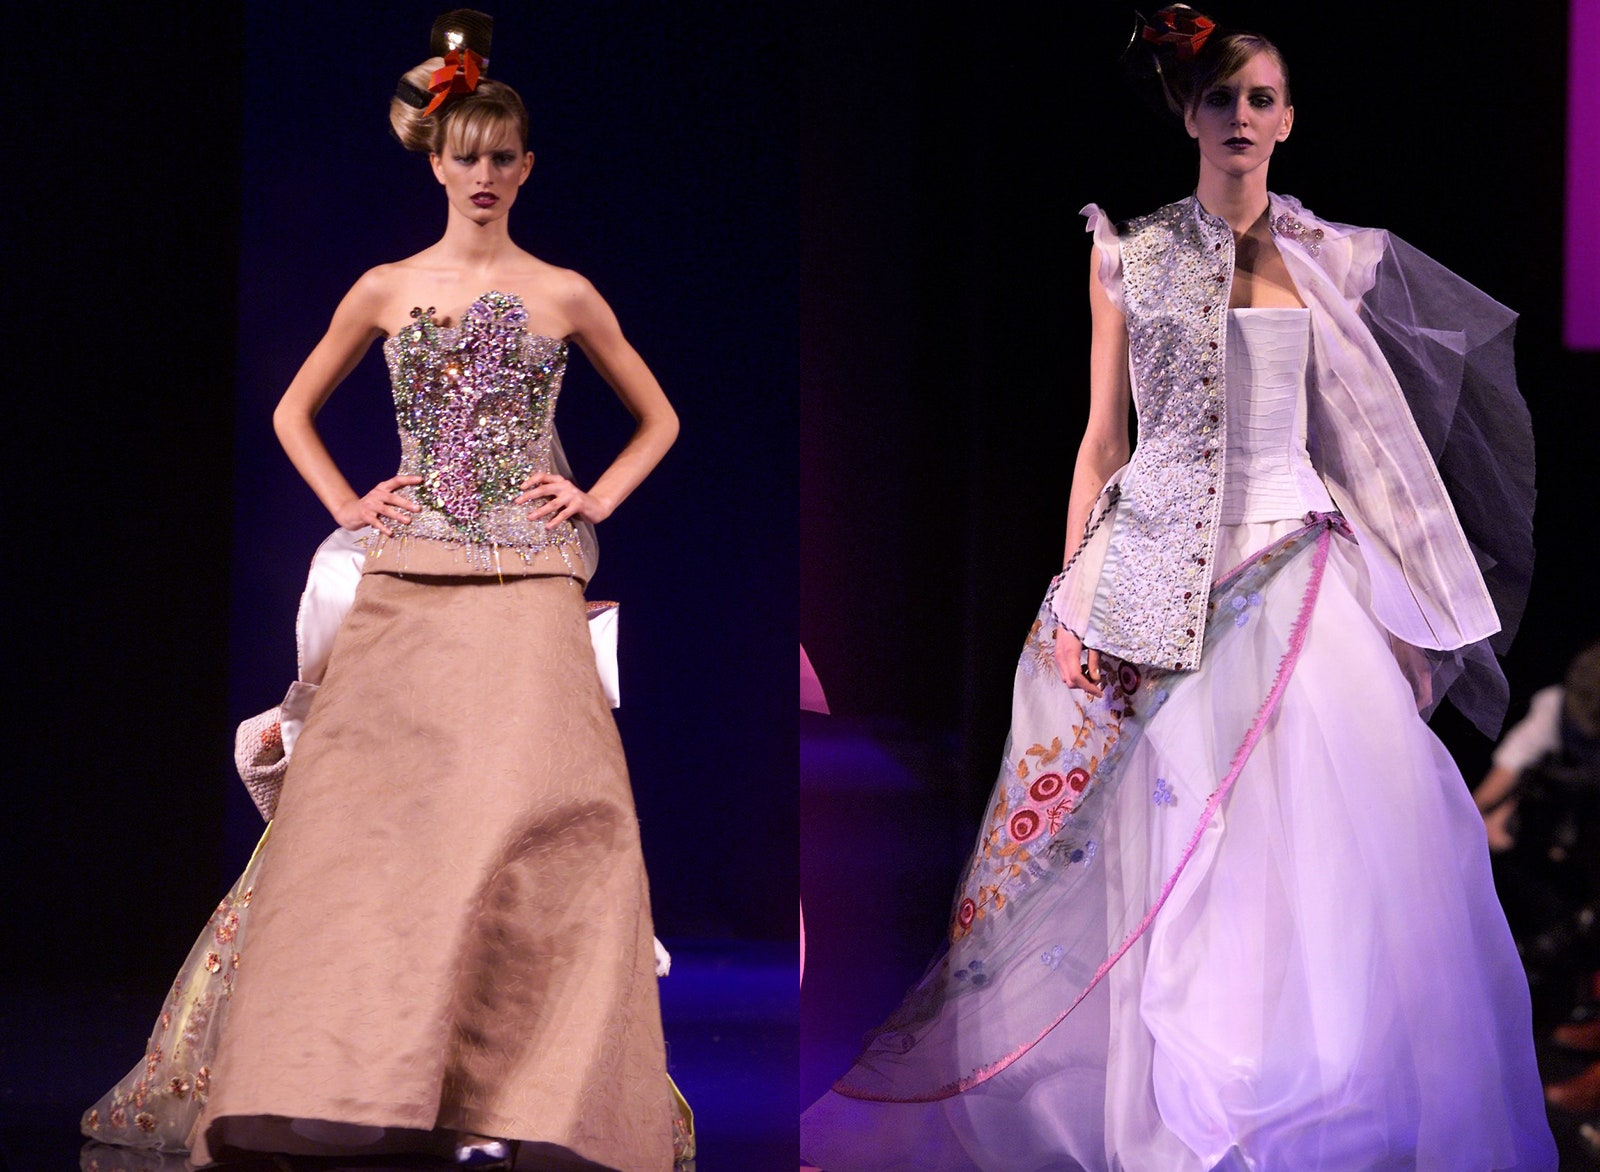 christian_lacroix_couture_spring_2001.jpg